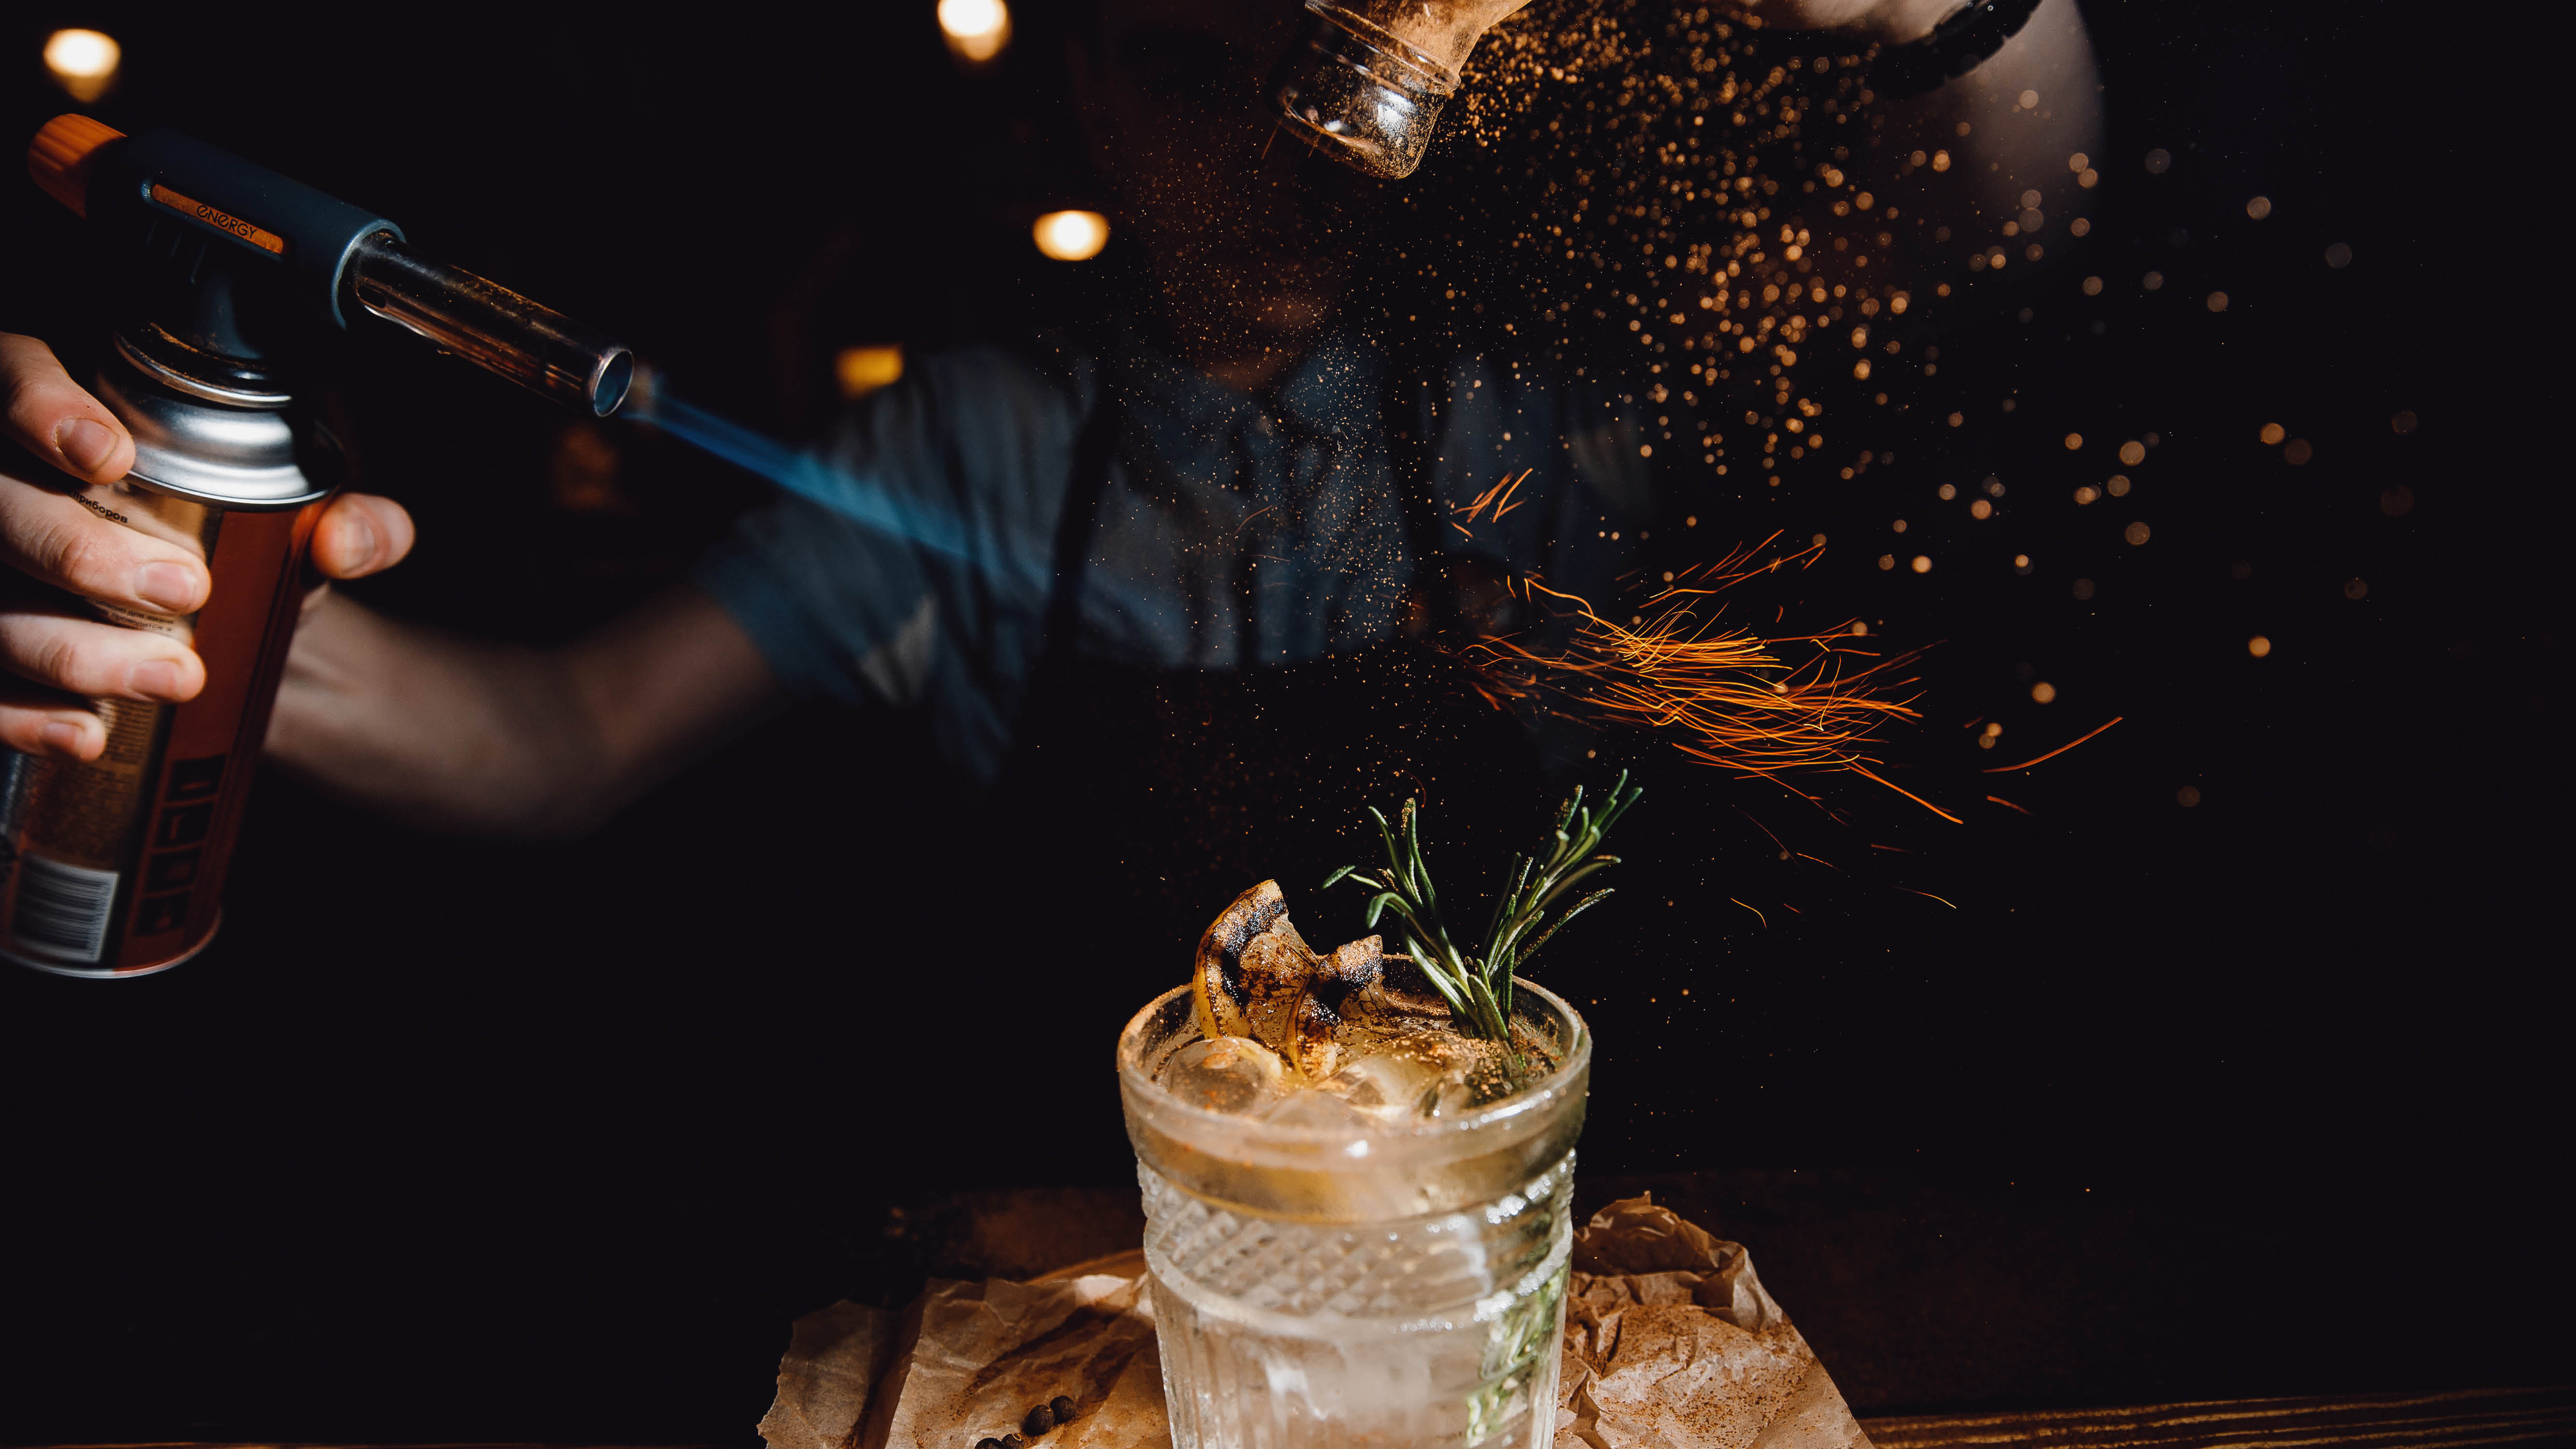 lifestyle-barman-making-cocktail-with-blow-torch.jpg